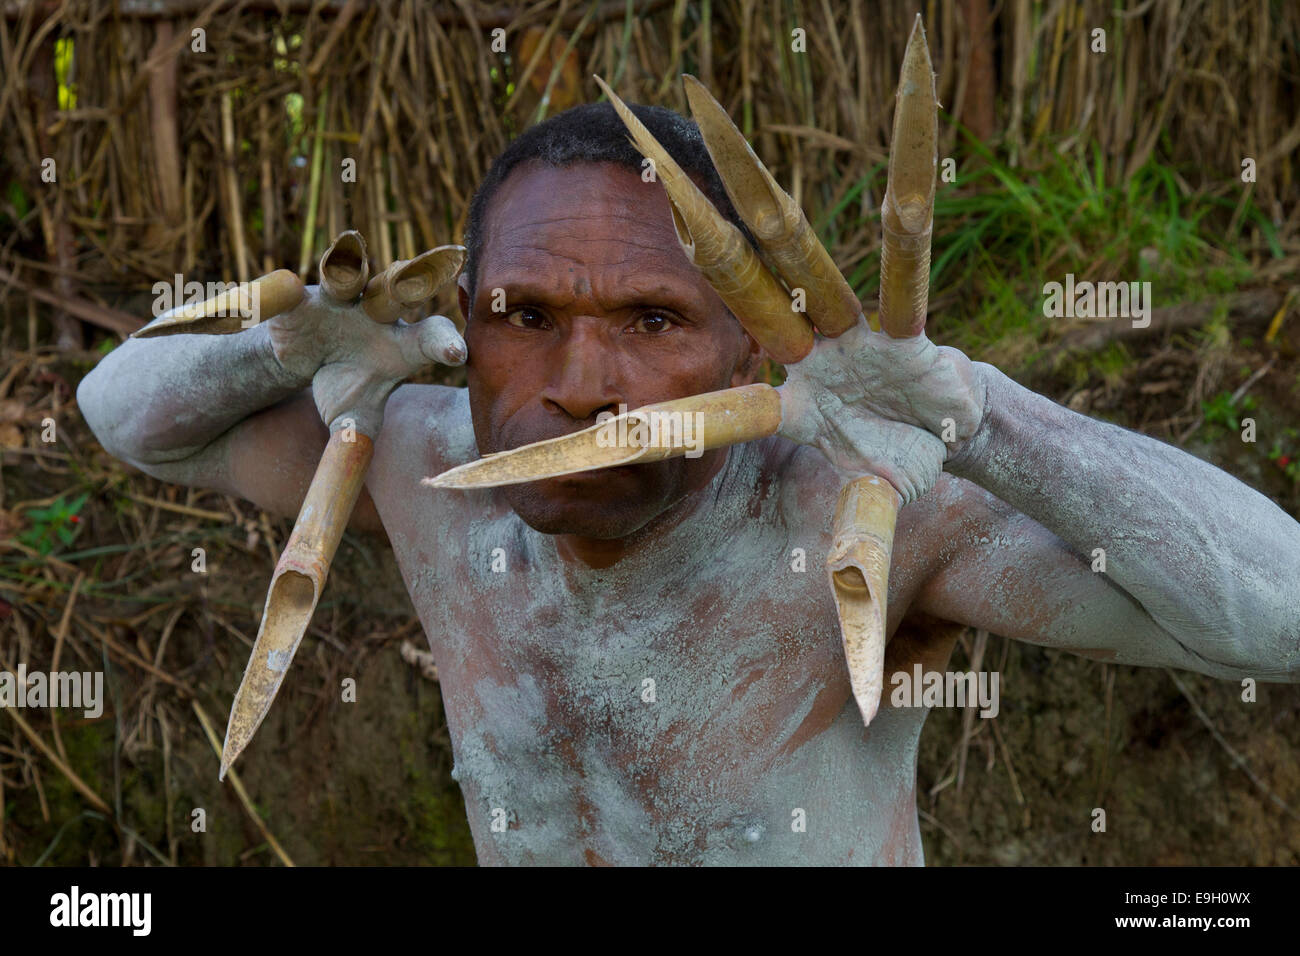 Mudman without Mask Shows his Claws - Stock Image